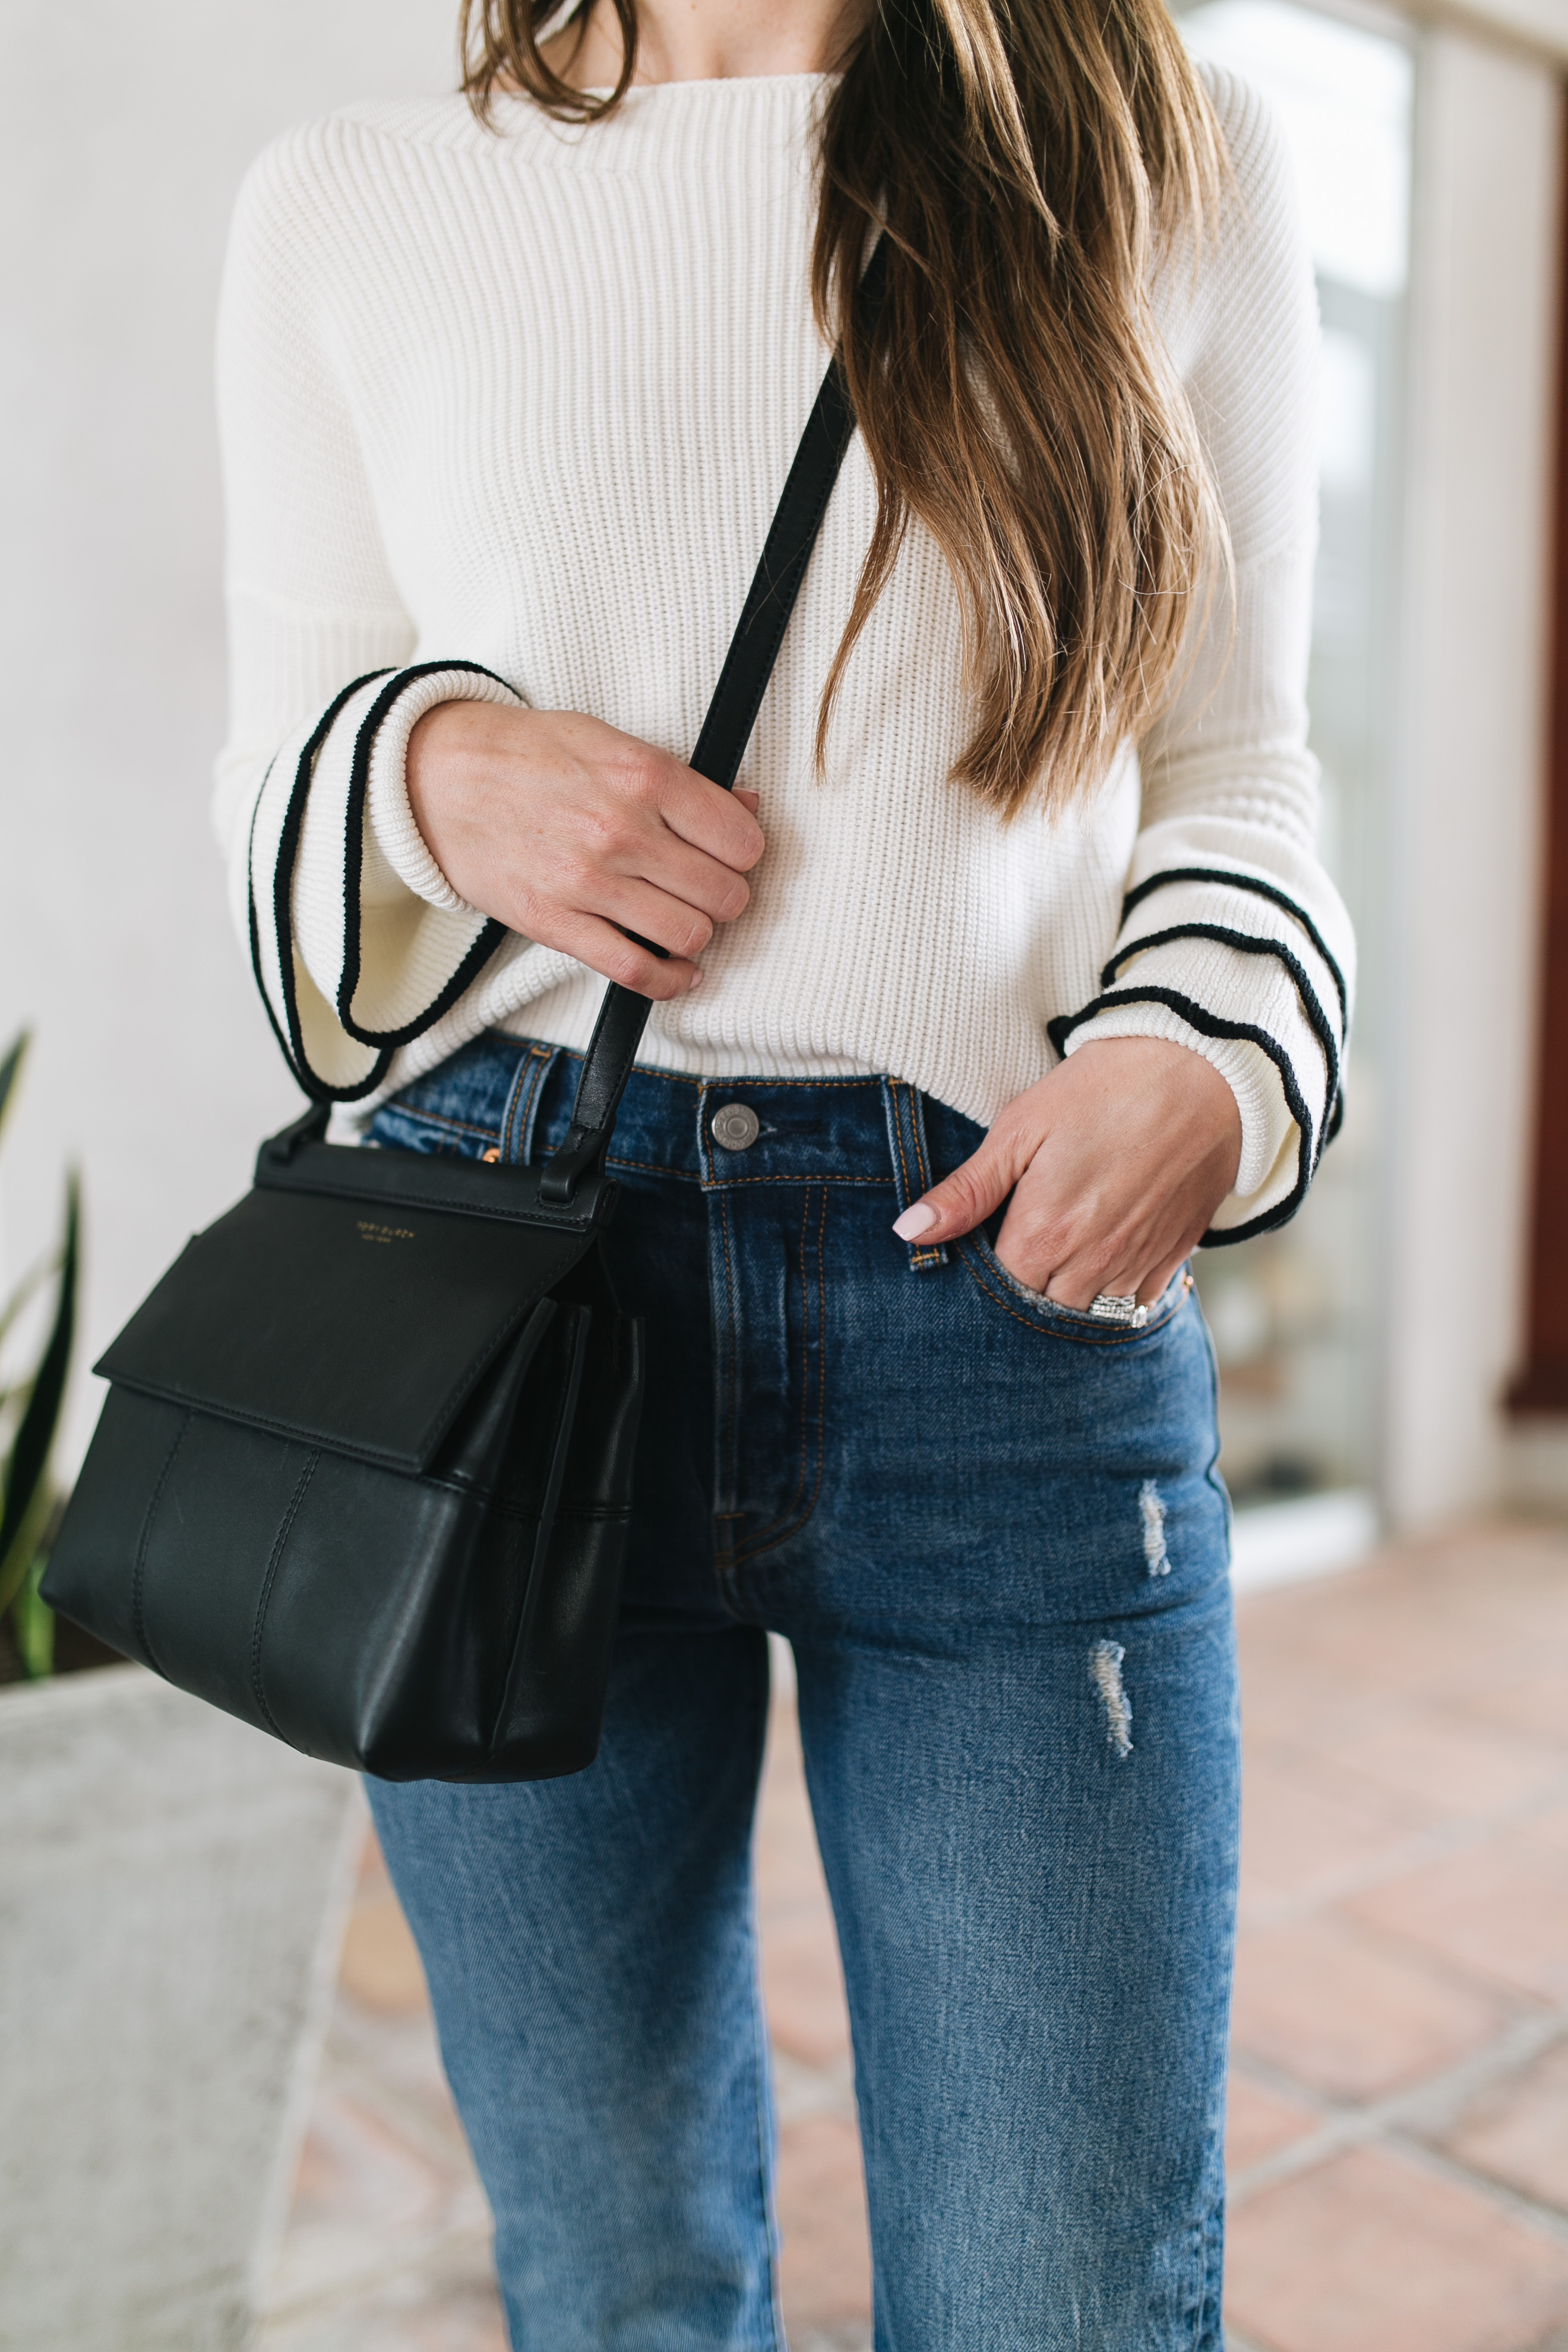 Style blogger Daryl-Ann Denner shares a huge trend for Fall 2017, the ruffle sleeve sweater, and styles an outfit with Levi's and Tory Burch bag